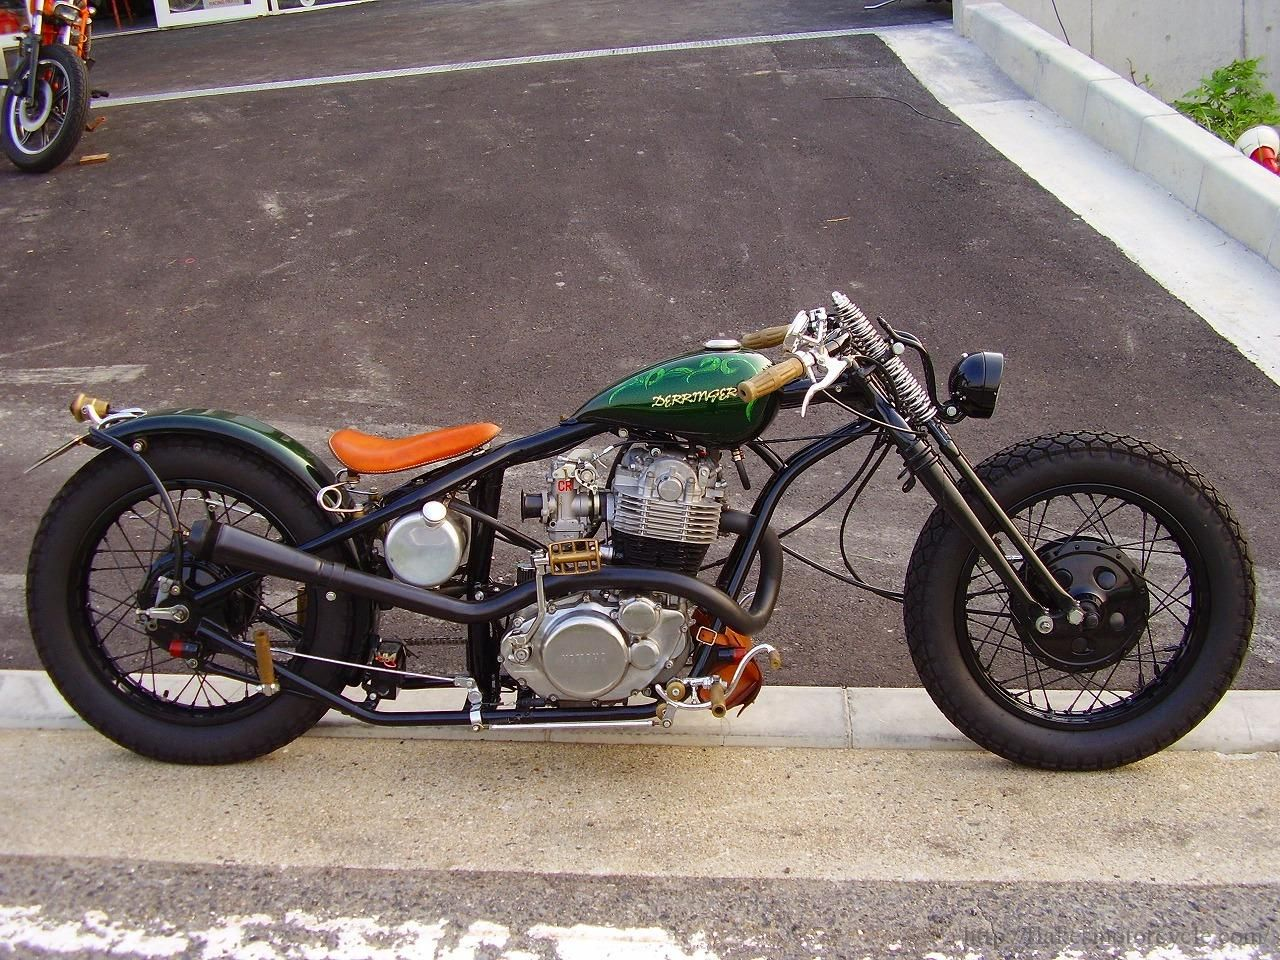 This Customized Yamaha SR400 Has Style to Spare - Airows